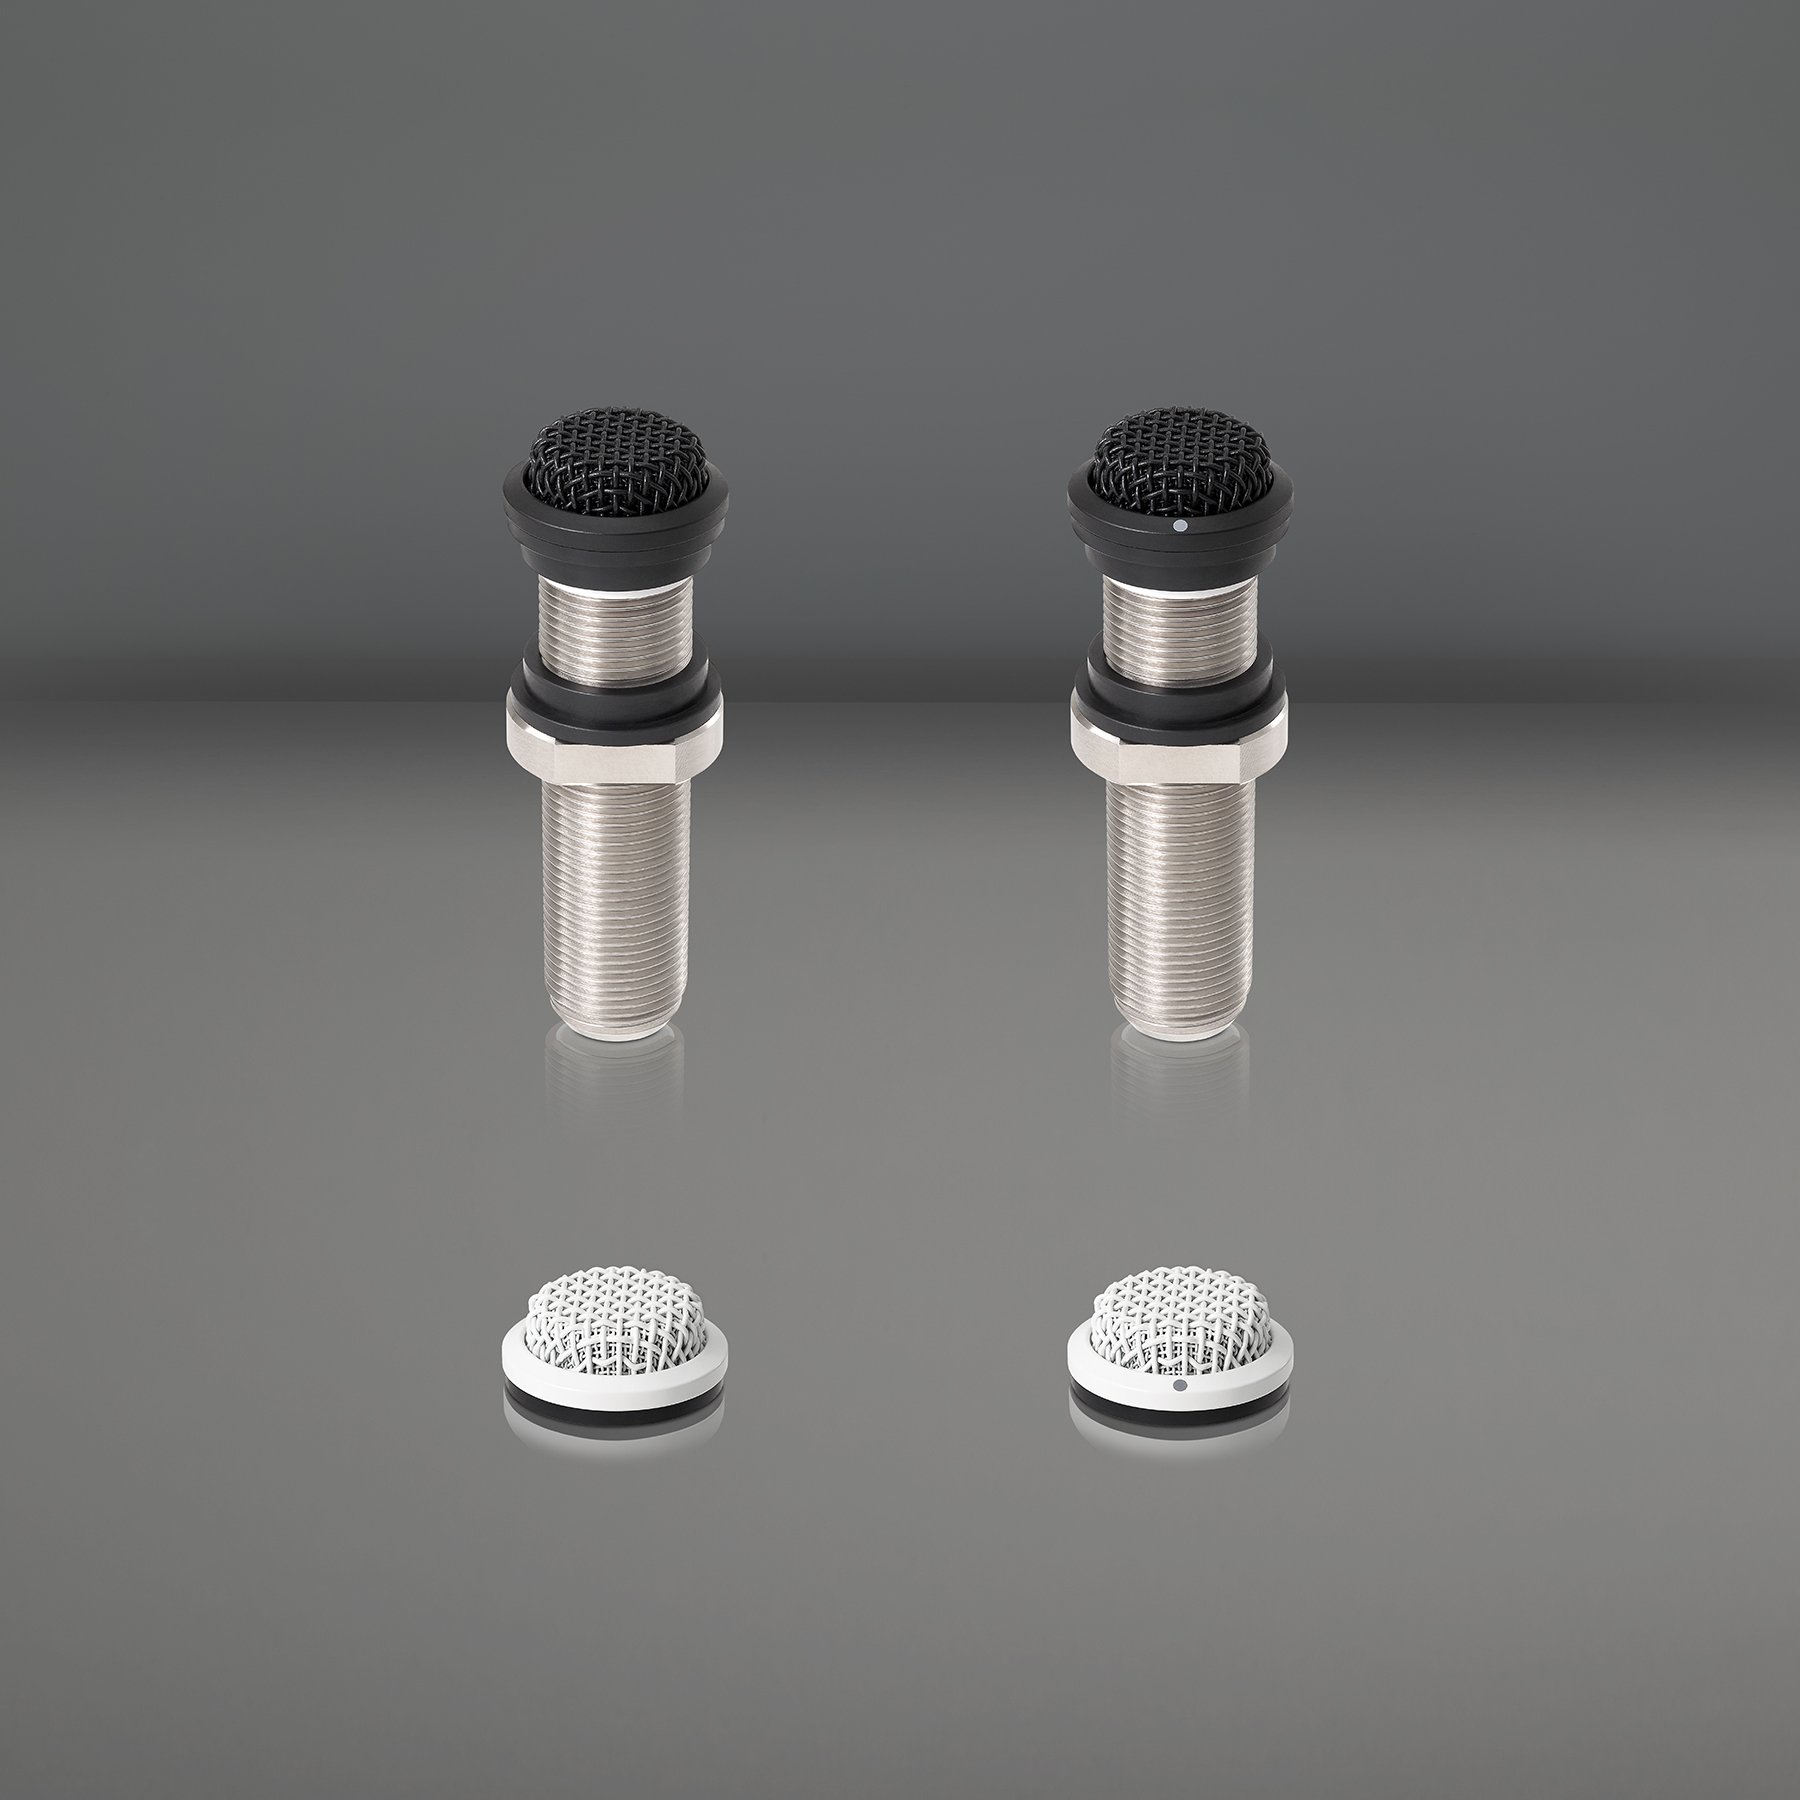 Audio-Technica's New Miniature ES945O/TB3 Omnidirectional Condenser Boundary Microphone and ES947C/TB3 Cardioid Condenser Boundary Microphone Are Now Available